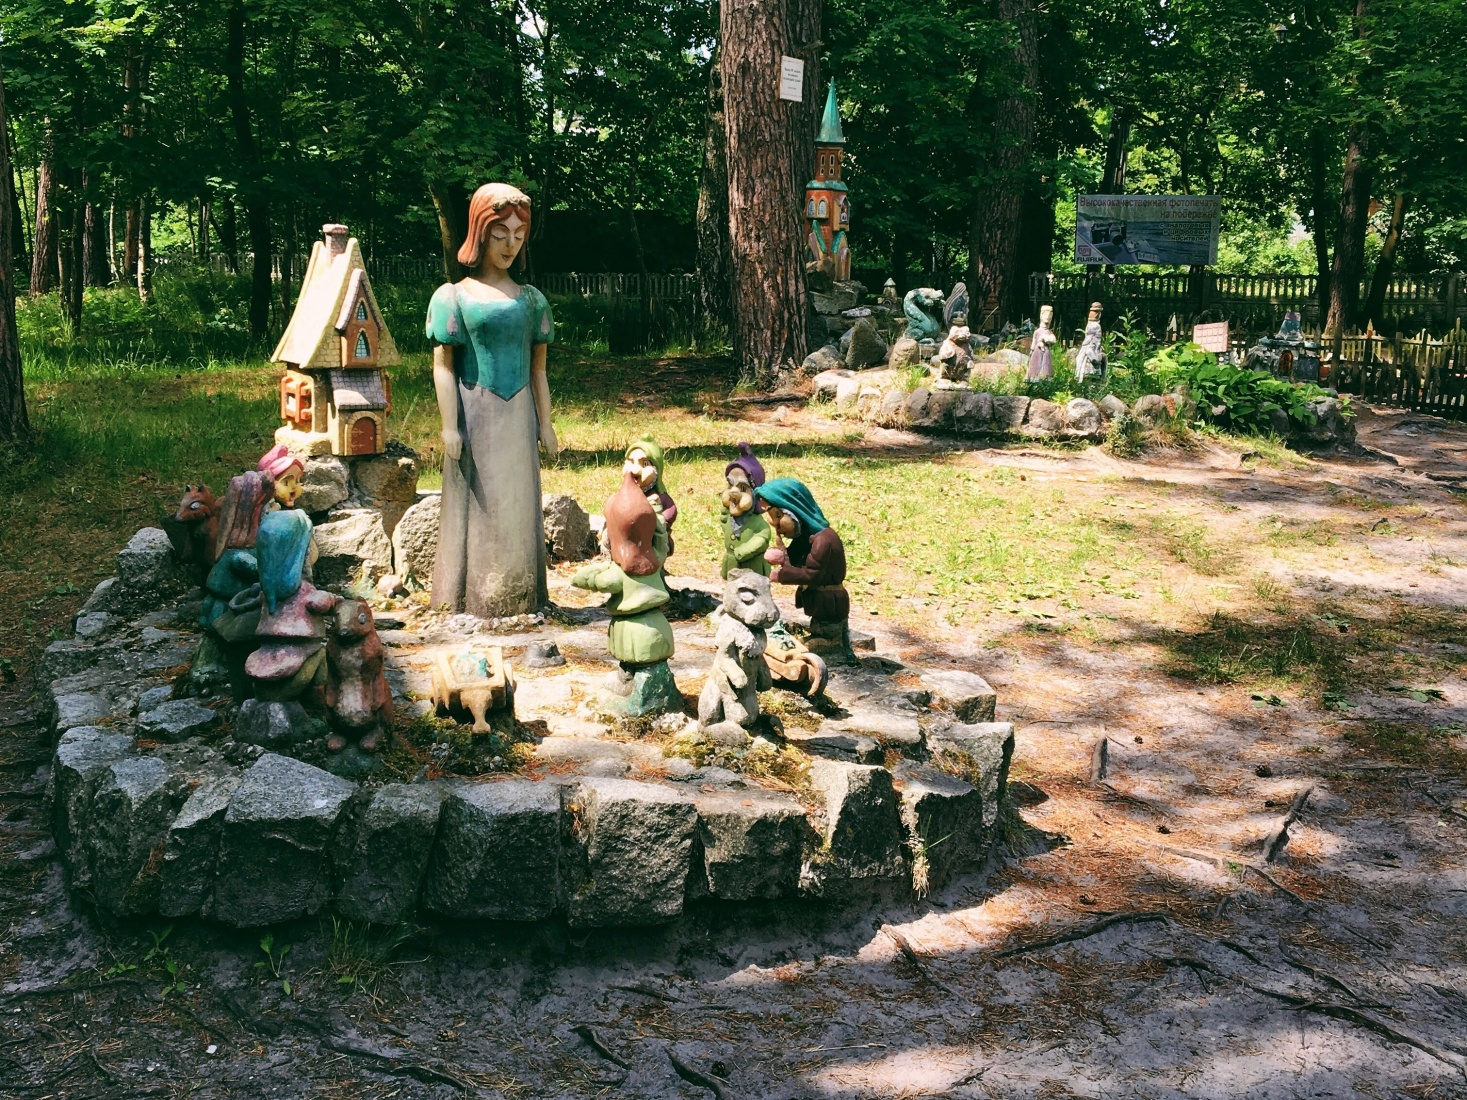 Statues, possibly of Snow White and the Seven Dwarves, in a small park in the outskirts of Svetlogorsk, outside Kaliningrad, Russia.